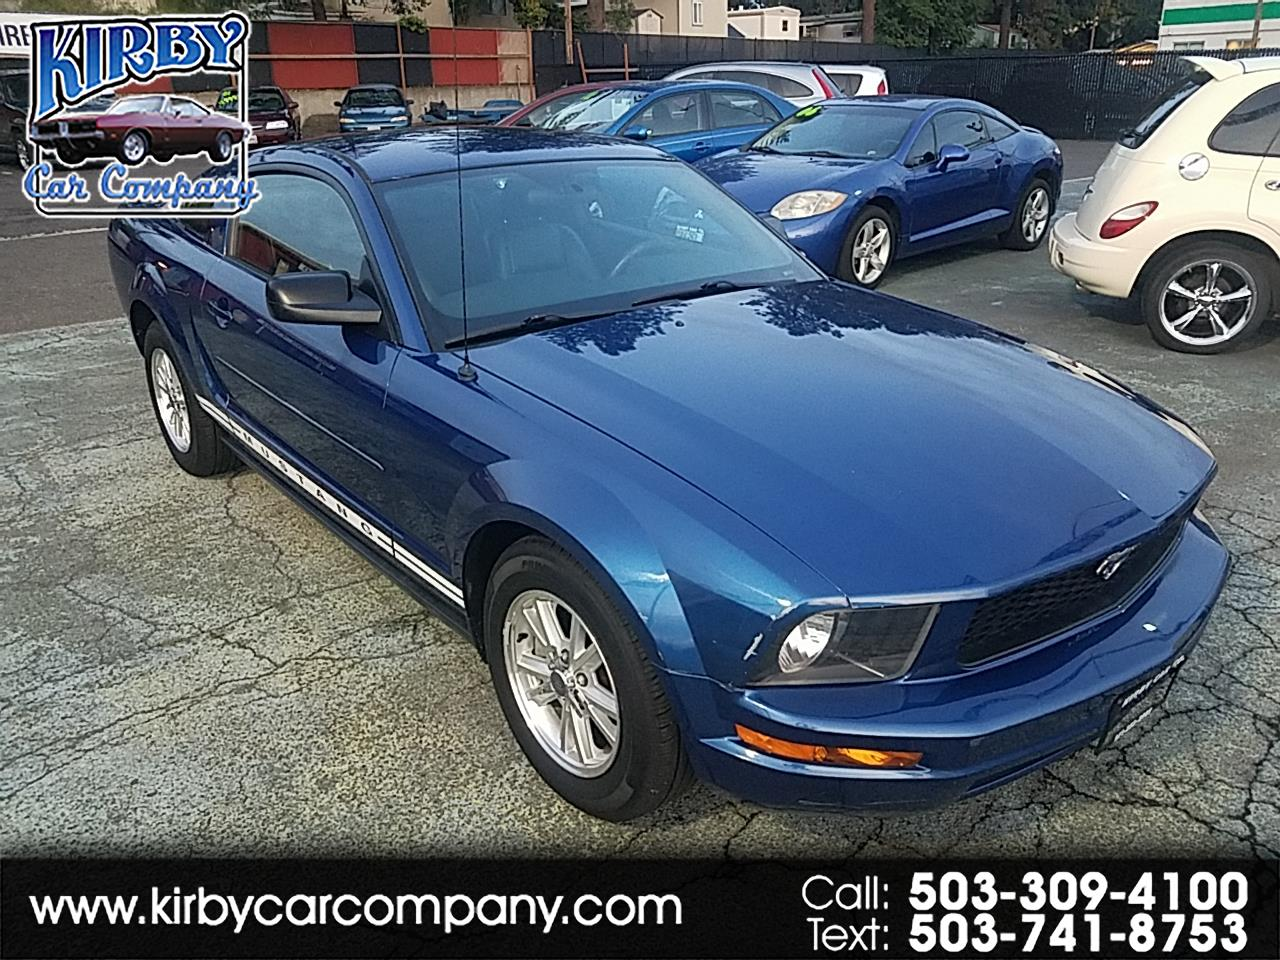 2007 Ford Mustang Premium Coupe 4.0 V6  SHAKER SOUND!  HOT SEE PICS!